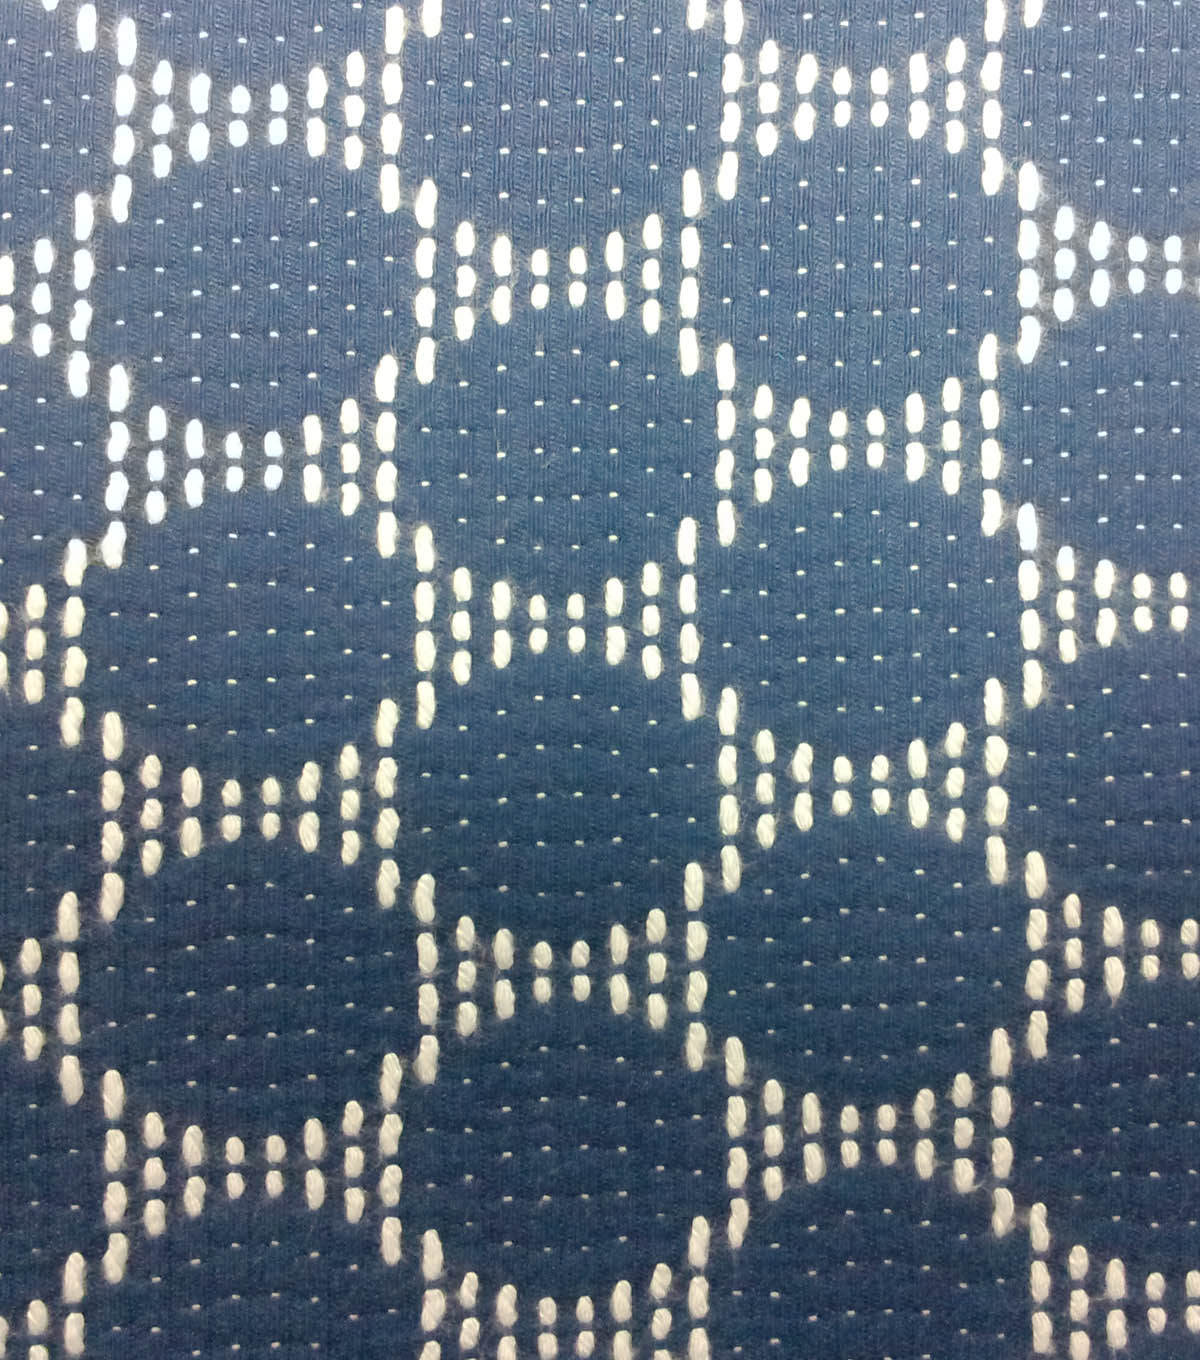 Azure Collection- Jacquard Dot Navy & Ivory Fabric